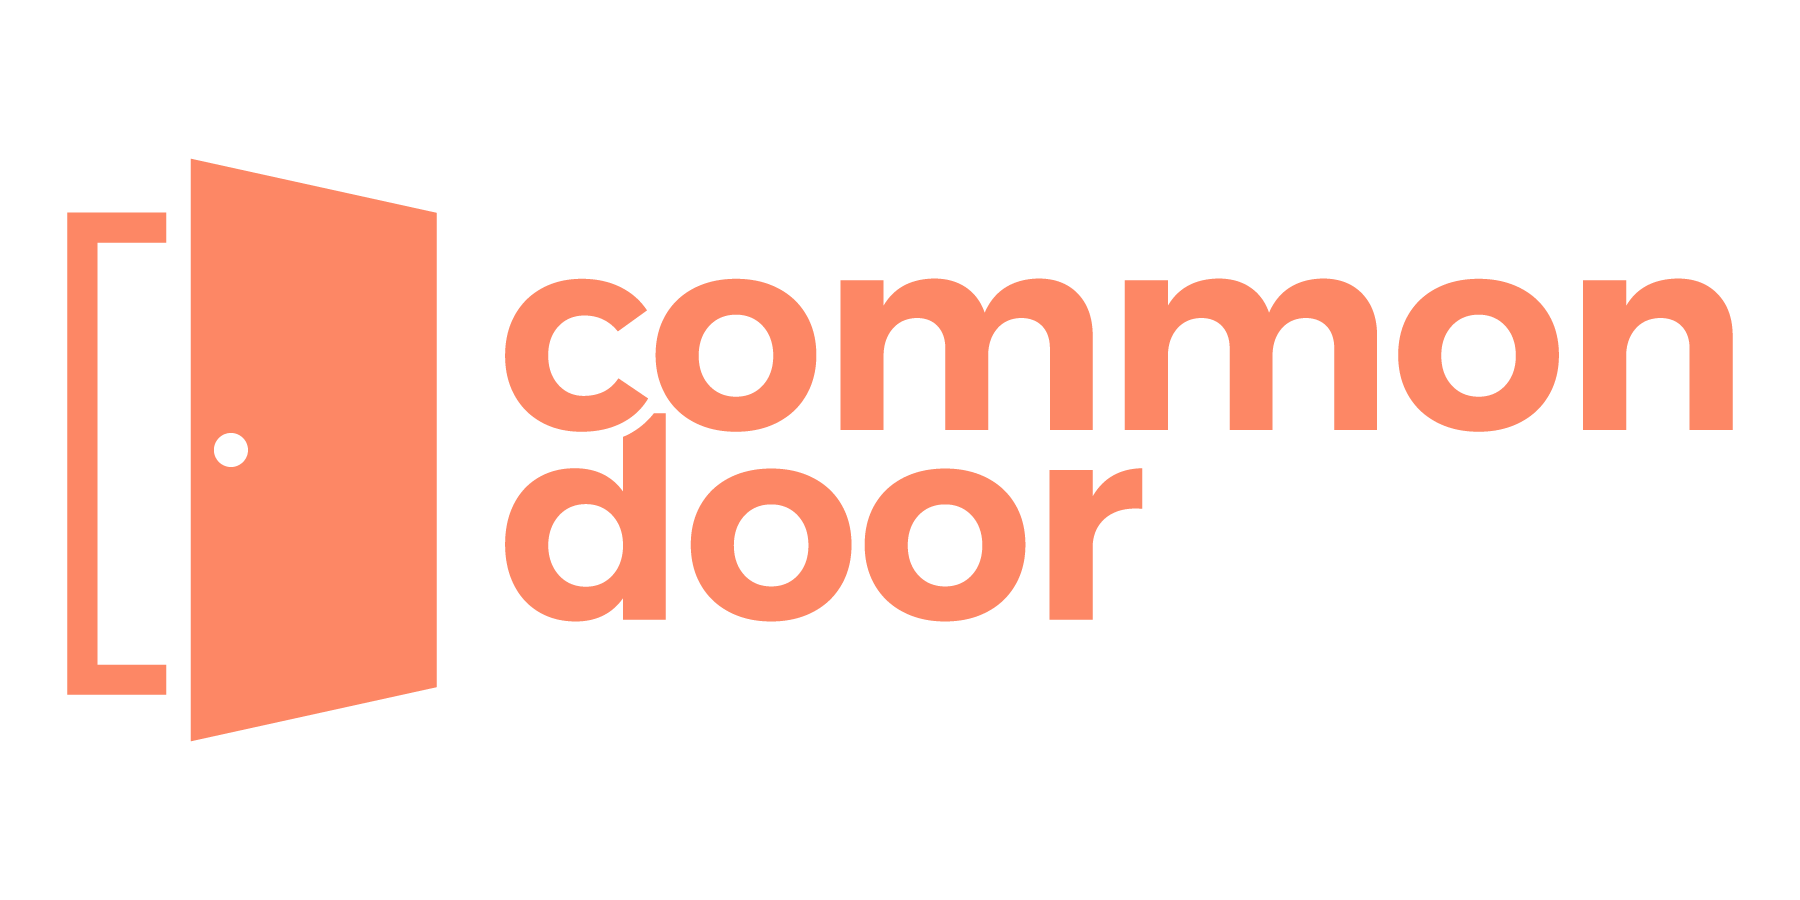 http://brittcreative.co/wp-content/uploads/2019/02/CommonDoor_MainLogo_Apricot.png